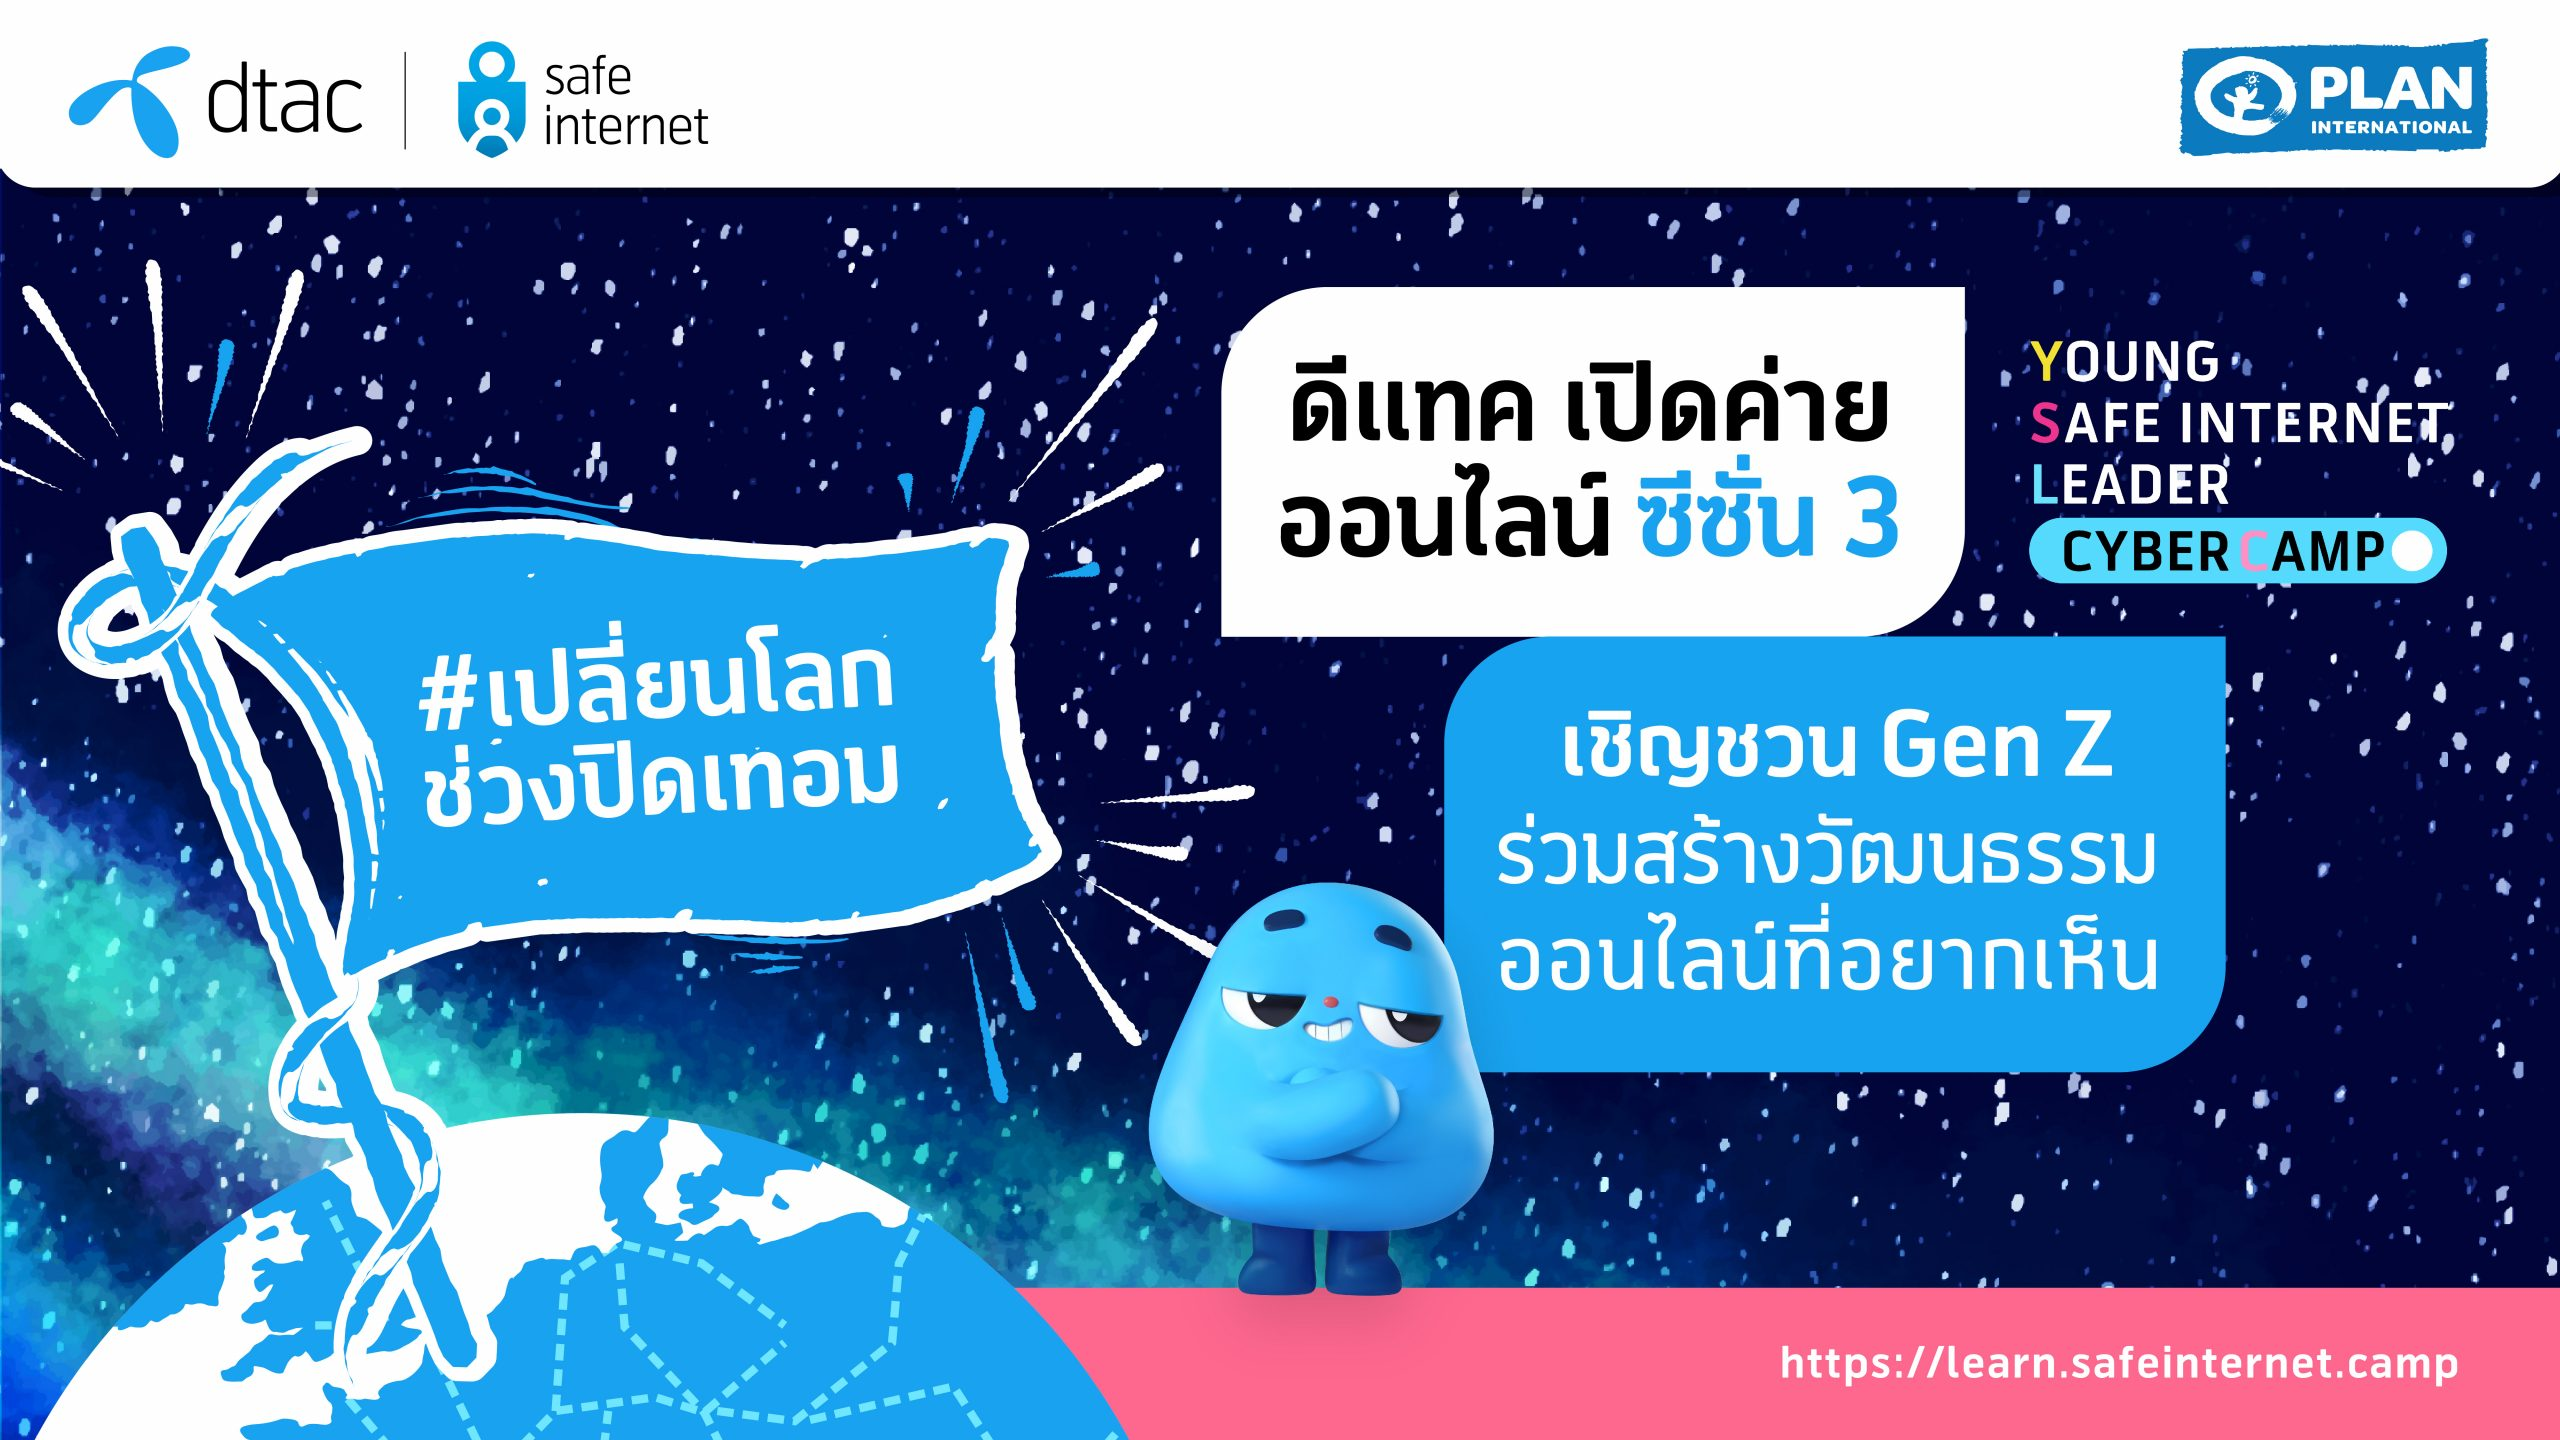 DTAC dtac Young Safe Internet Leader Cyber Camp Gen Z